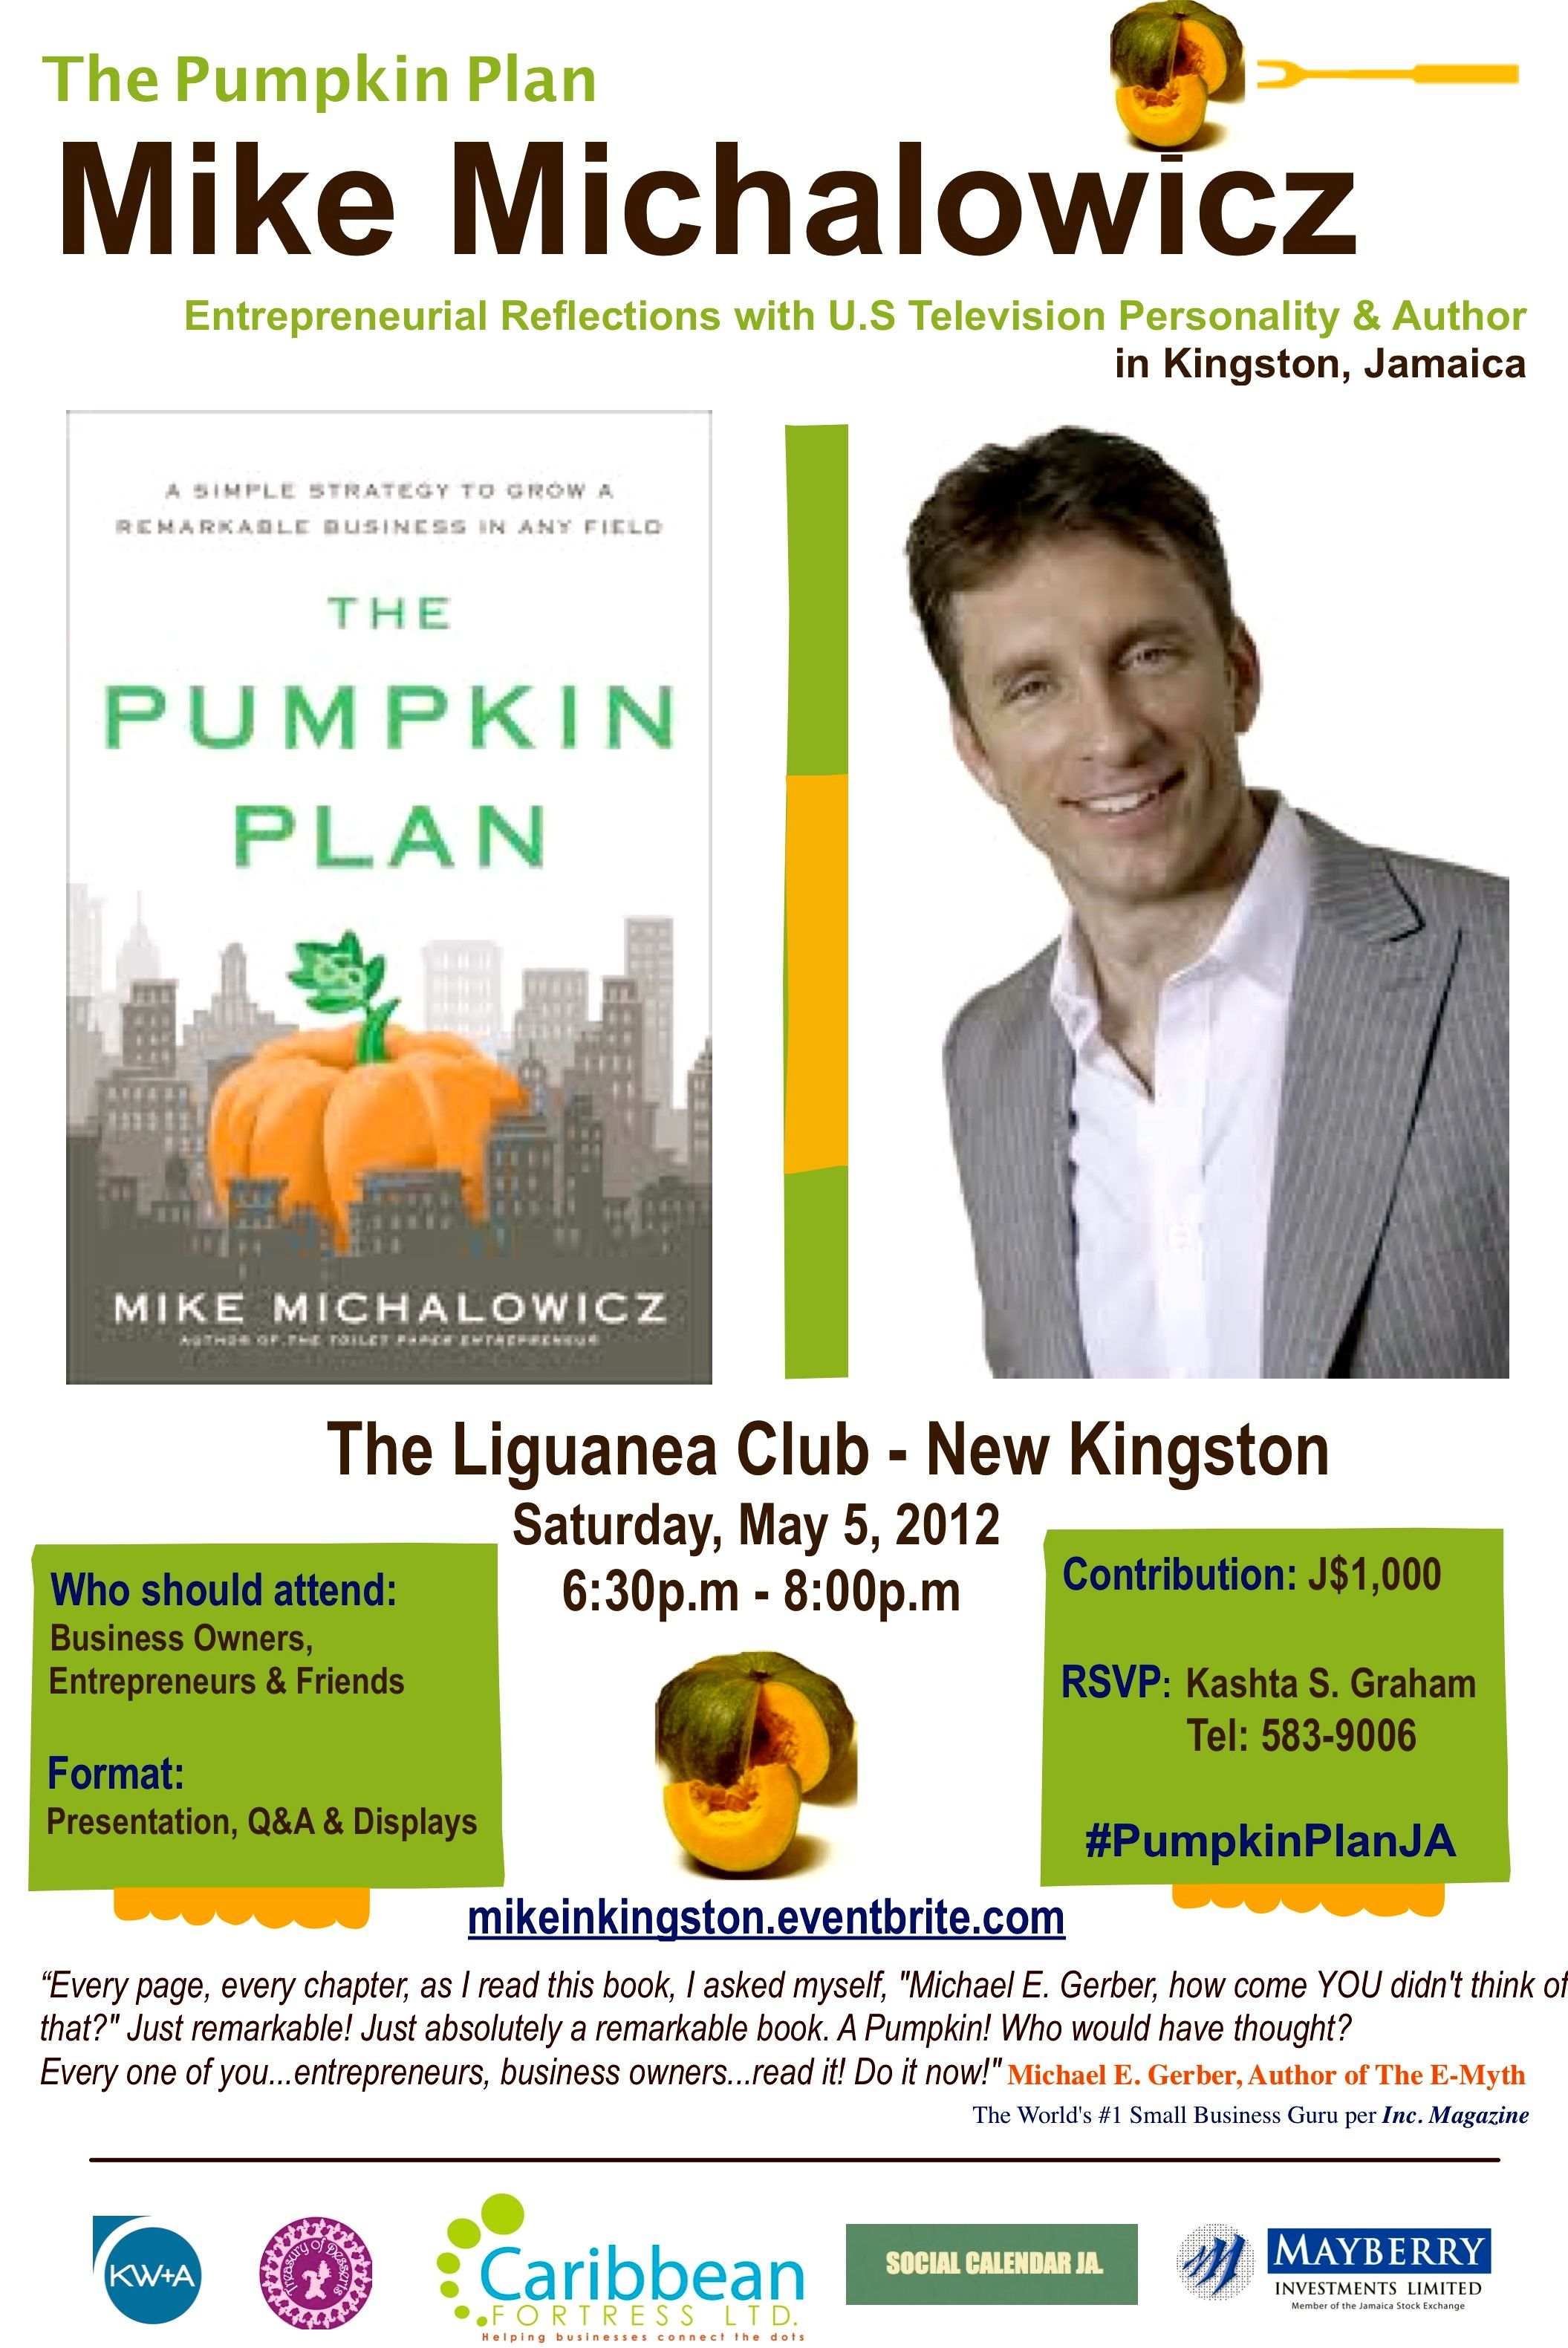 U.S Television Personality and Author - Mike Michalowicz in Kingston, Jamaica